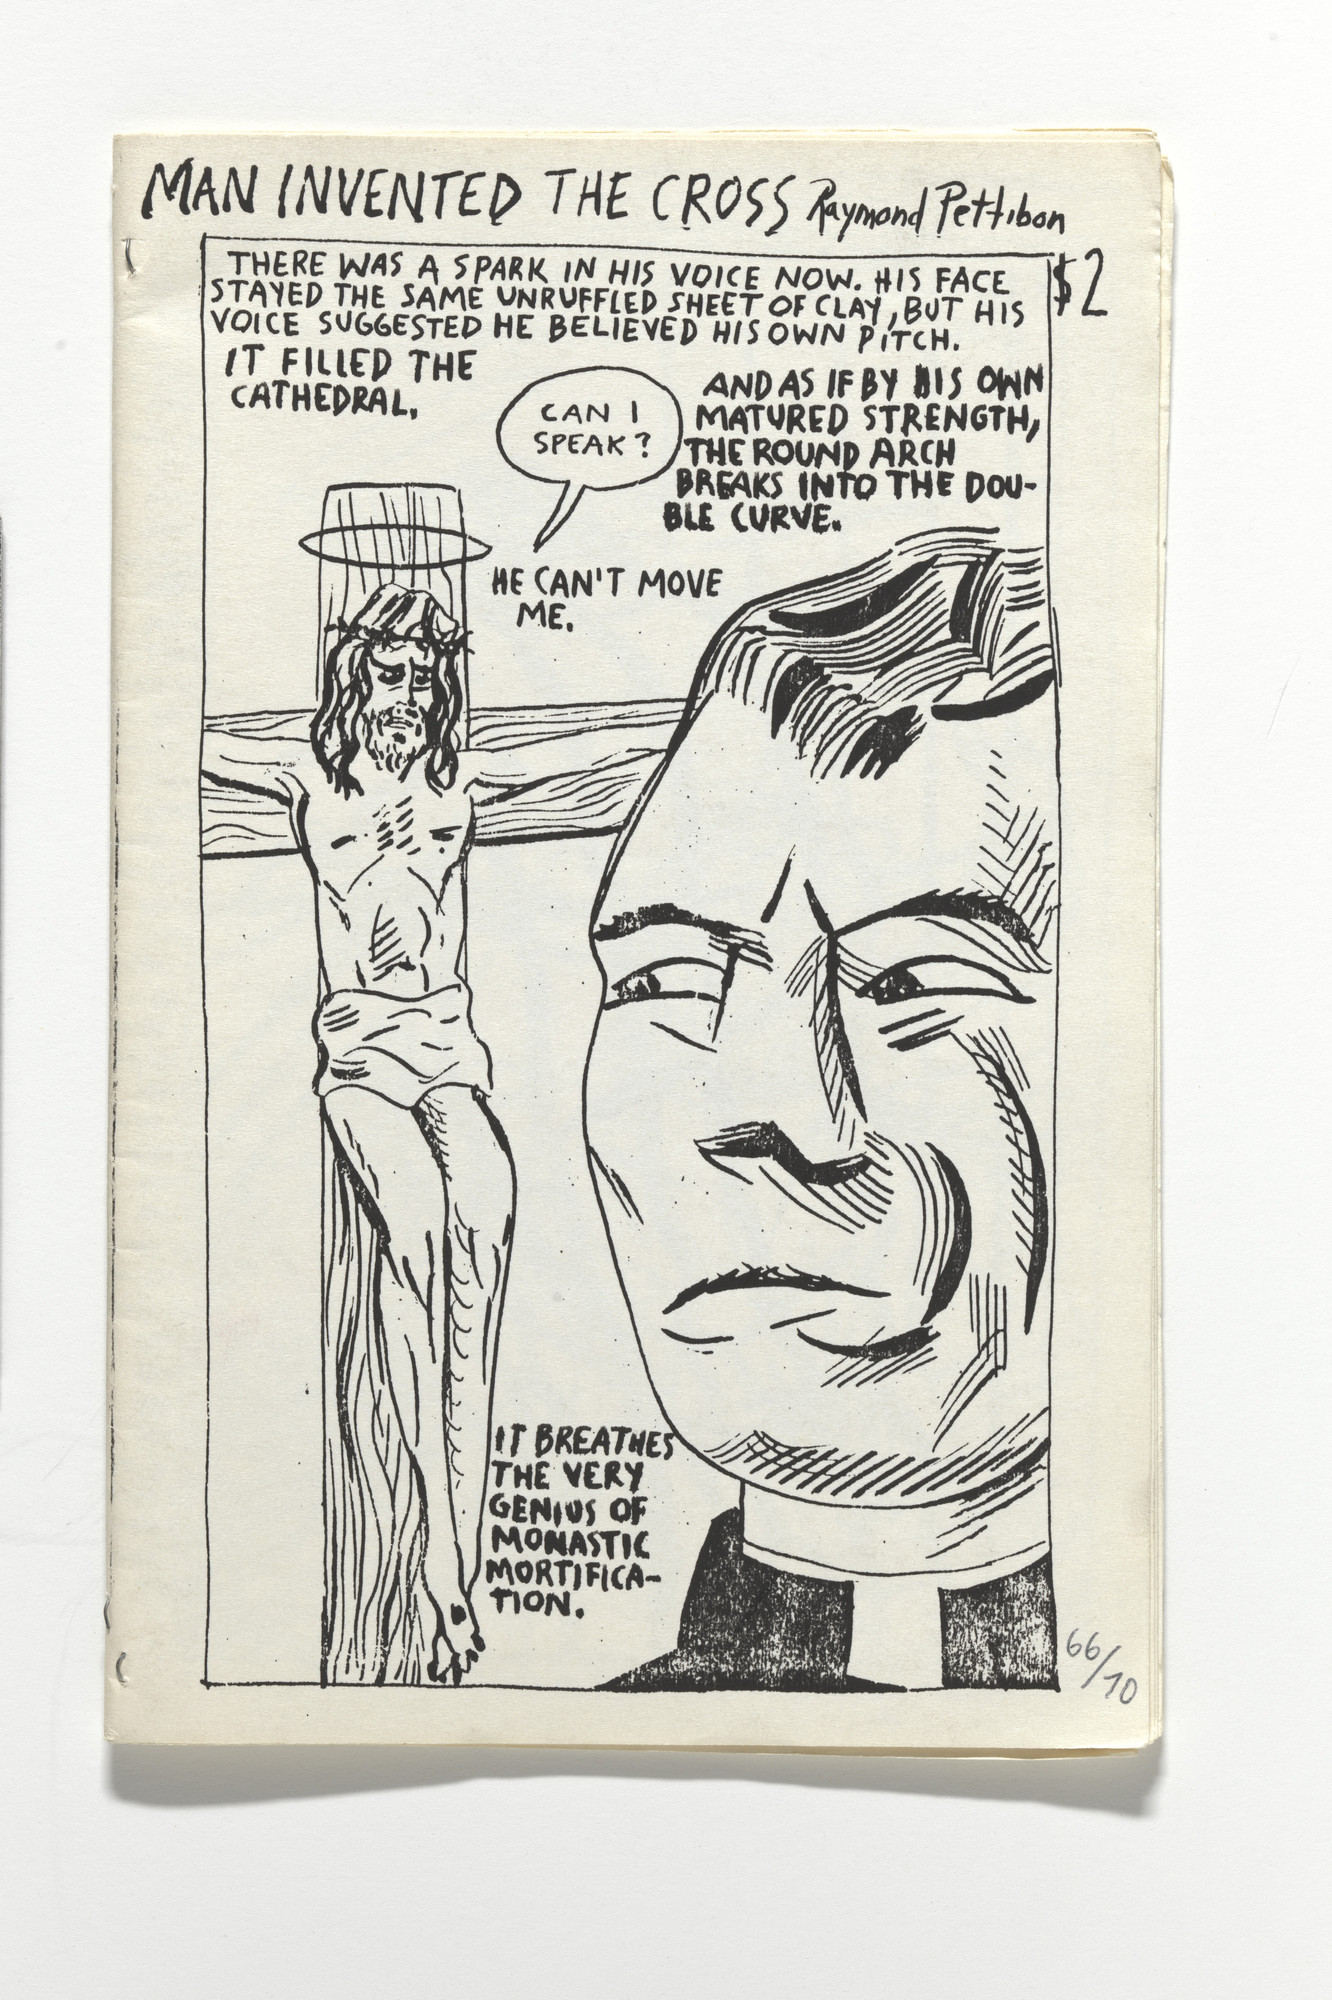 Raymond Pettibon, Nelson Tarpenny. Man Invented the Cross. 1989